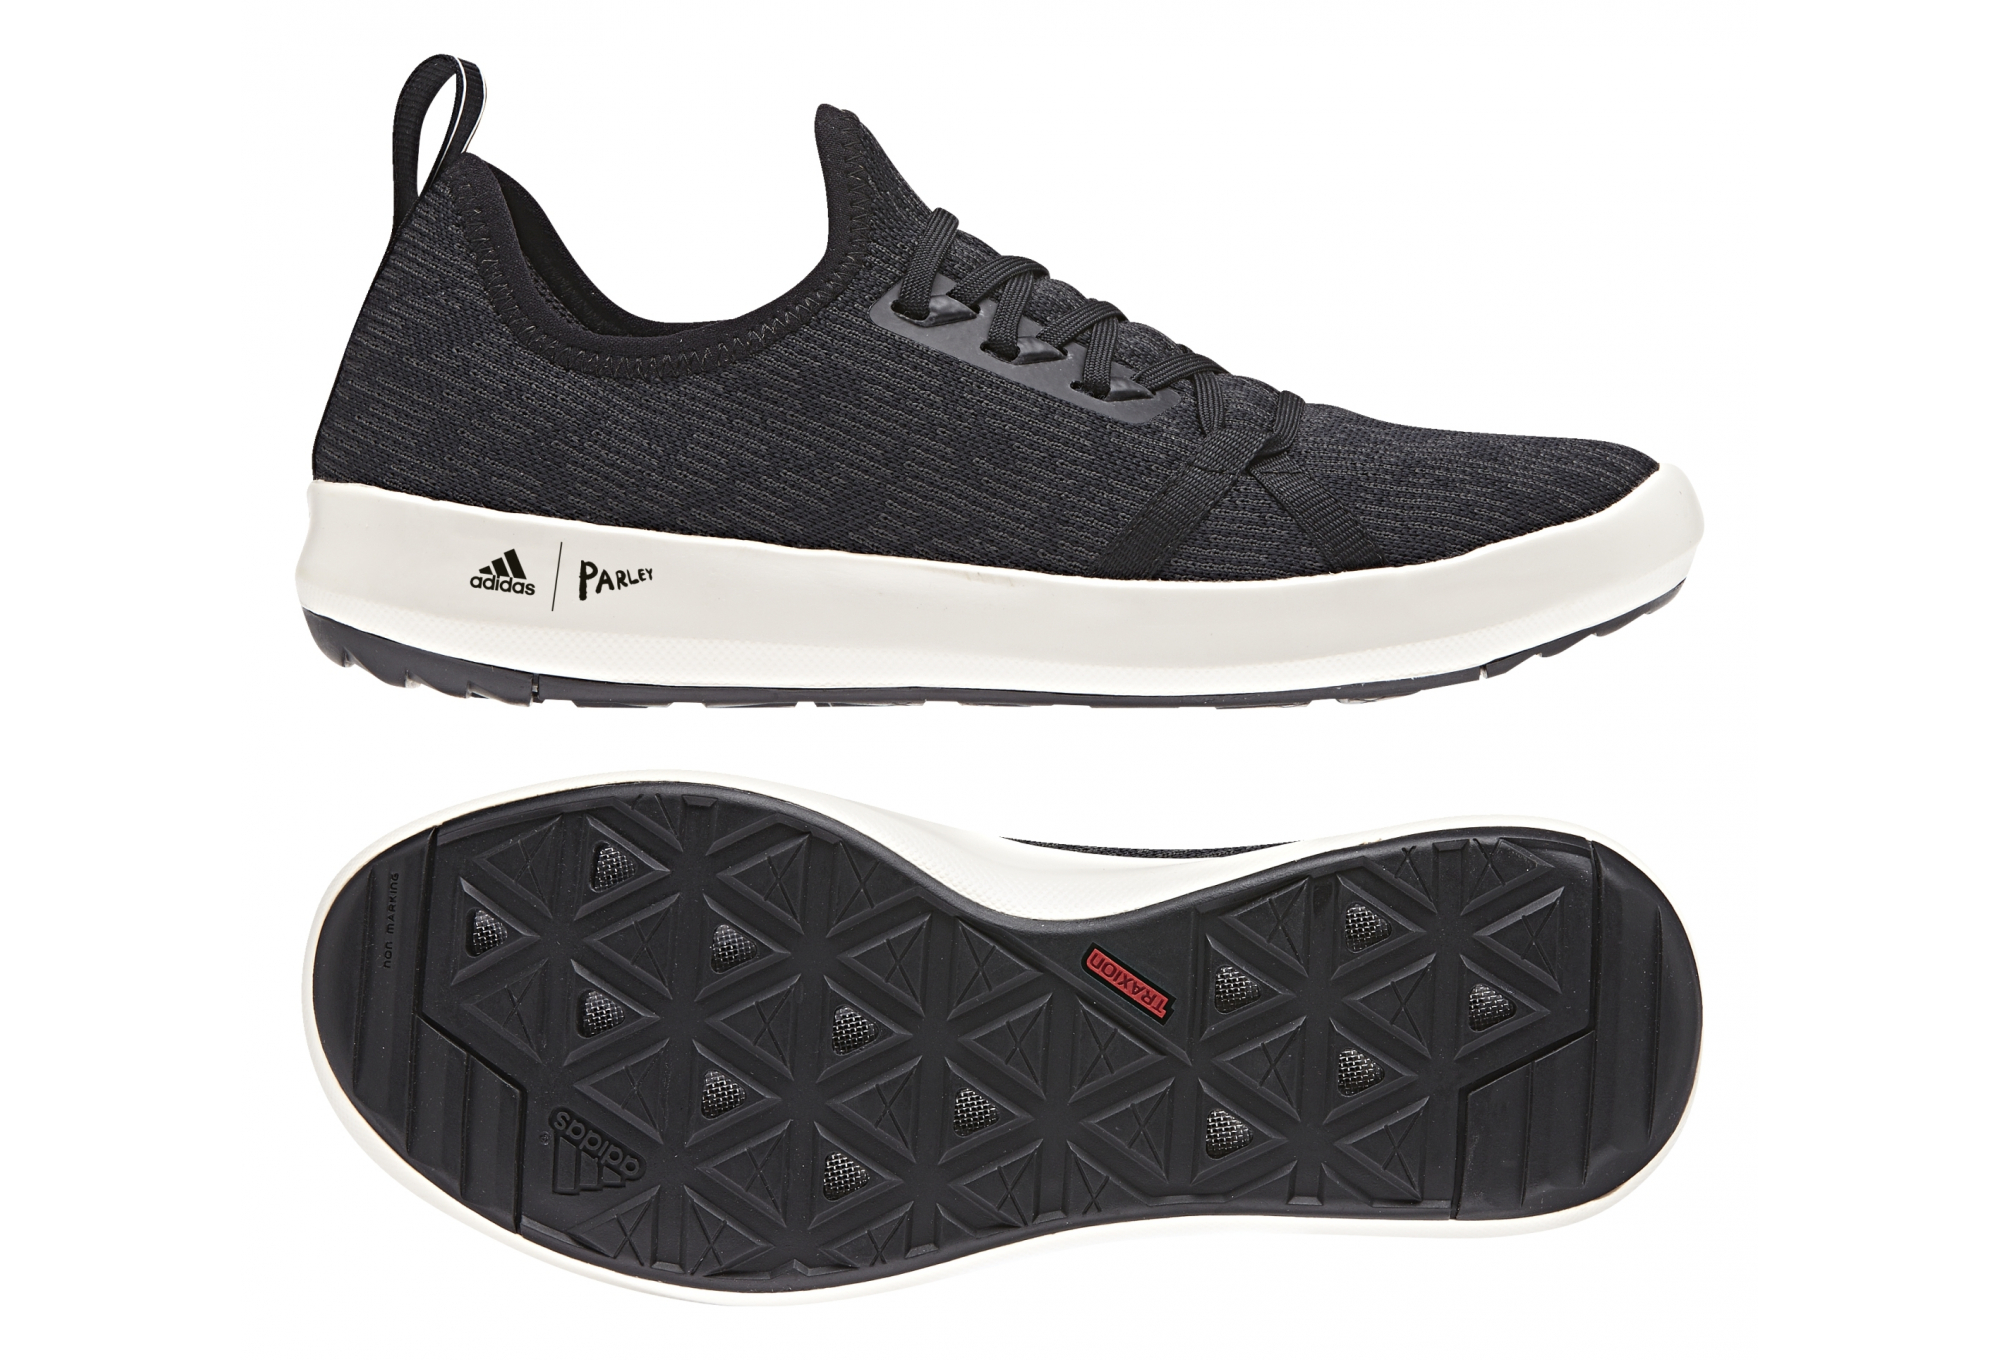 on sale f1bee d2450 Chaussures adidas Terrex Climacool Boat Parley